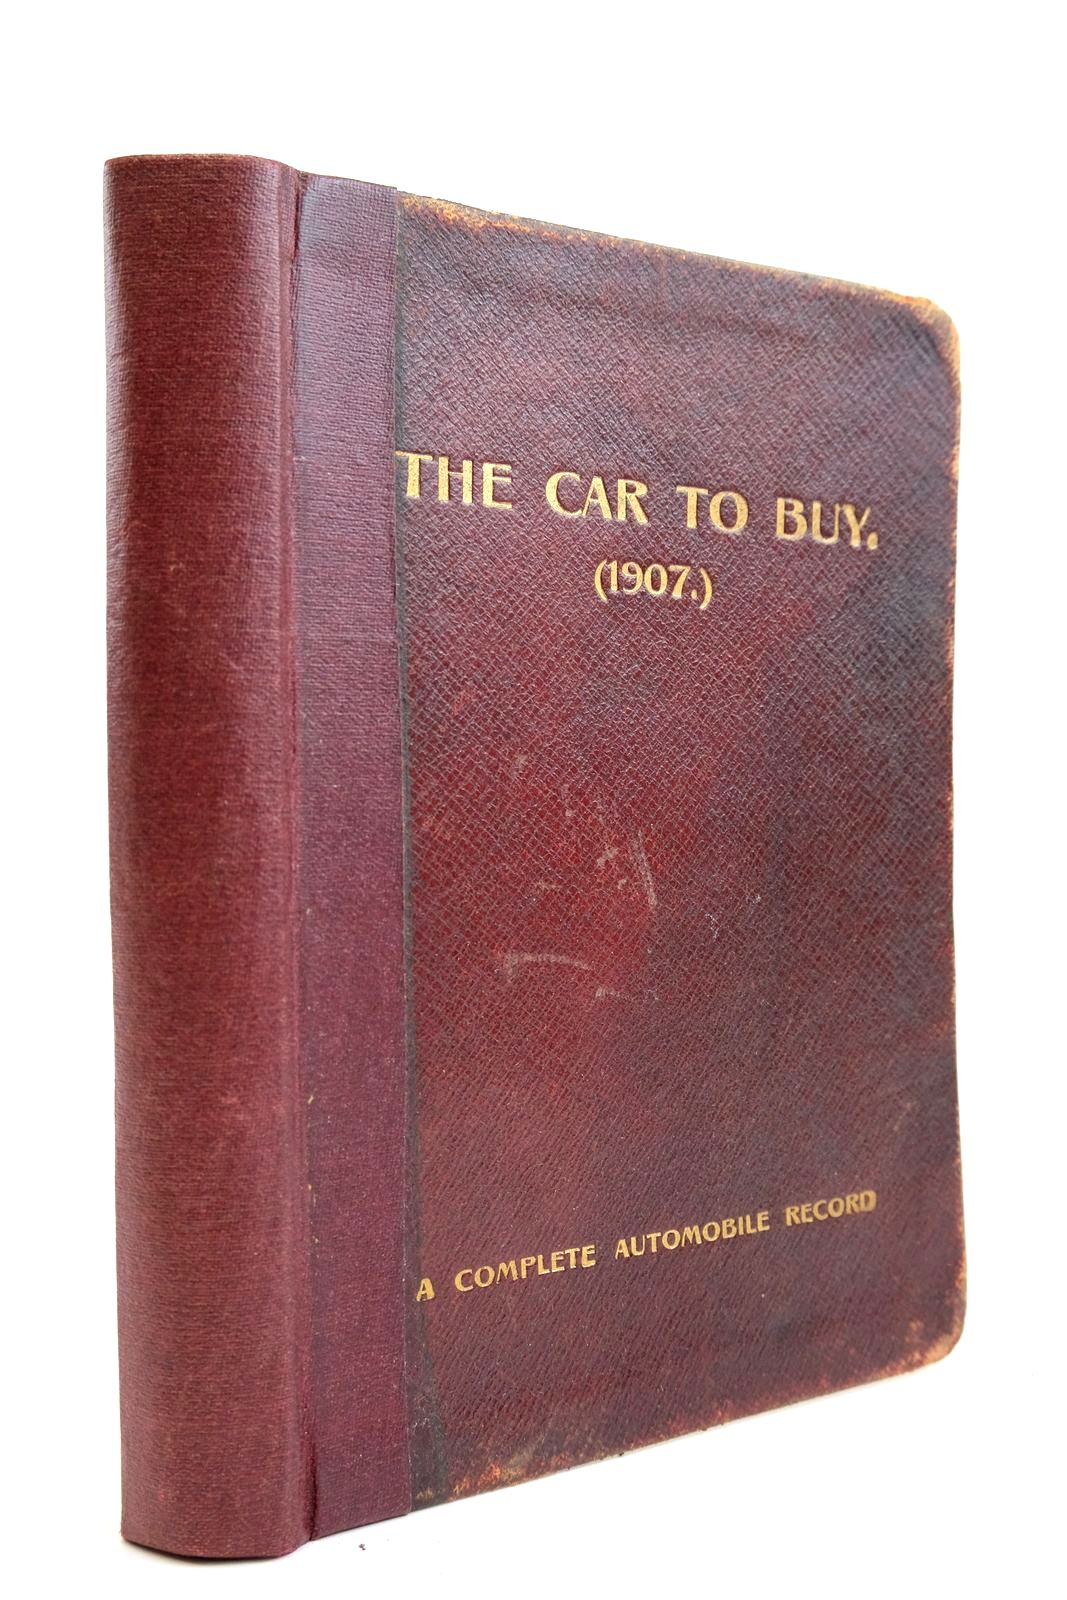 Photo of THE CAR TO BUY: A COMPLETE AUTOMOBILE RECORD- Stock Number: 2133868